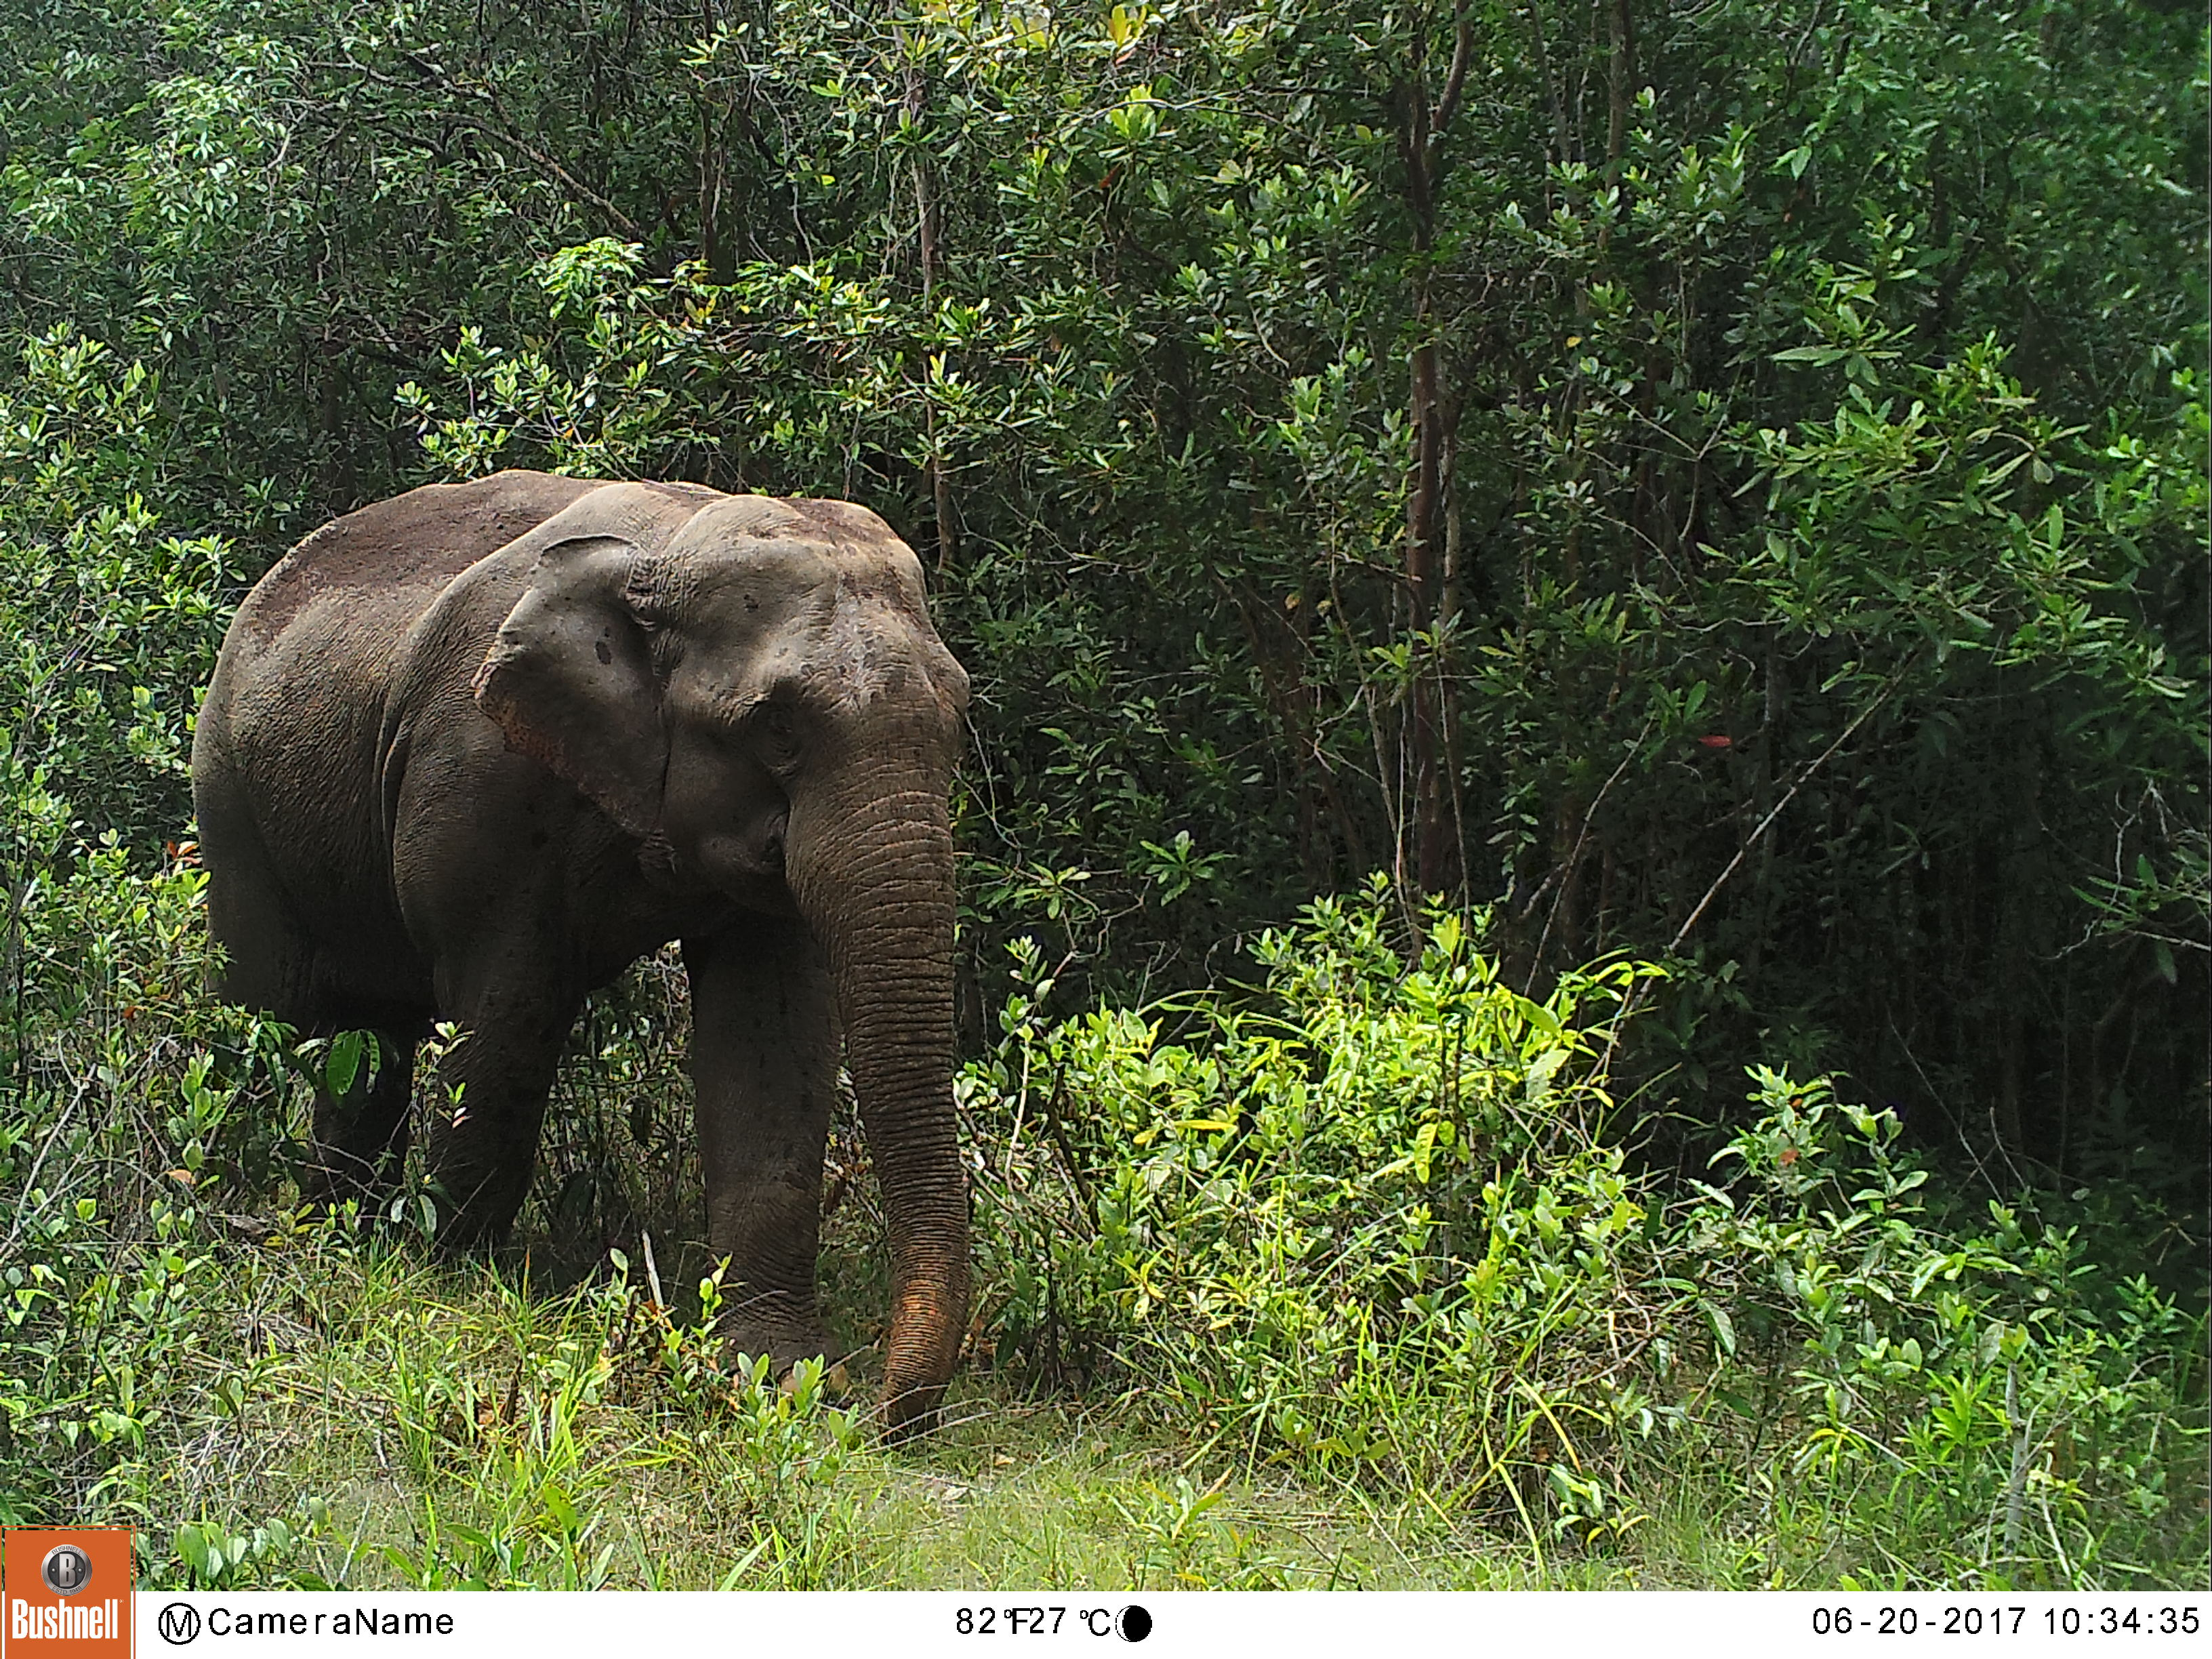 Reducing Threats to Elephants and Mitigating Human-Elephant Conflict in the Core Habitat of the Cardamom Mountain Landscape